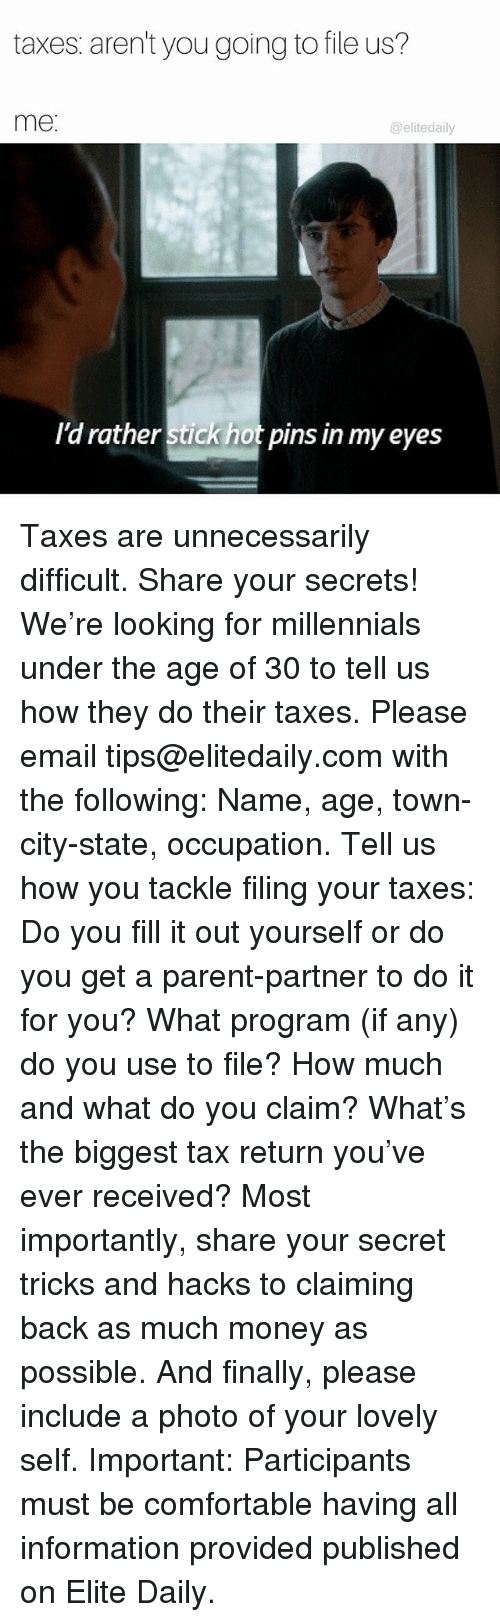 Comfortable, Memes, and Money: taxes aren't you going to file us?  me  elite daily  I'd rather Stick hot pins in my eyes Taxes are unnecessarily difficult. Share your secrets! We're looking for millennials under the age of 30 to tell us how they do their taxes. Please email tips@elitedaily.com with the following: Name, age, town-city-state, occupation. Tell us how you tackle filing your taxes: Do you fill it out yourself or do you get a parent-partner to do it for you? What program (if any) do you use to file? How much and what do you claim? What's the biggest tax return you've ever received? Most importantly, share your secret tricks and hacks to claiming back as much money as possible. And finally, please include a photo of your lovely self. Important: Participants must be comfortable having all information provided published on Elite Daily.